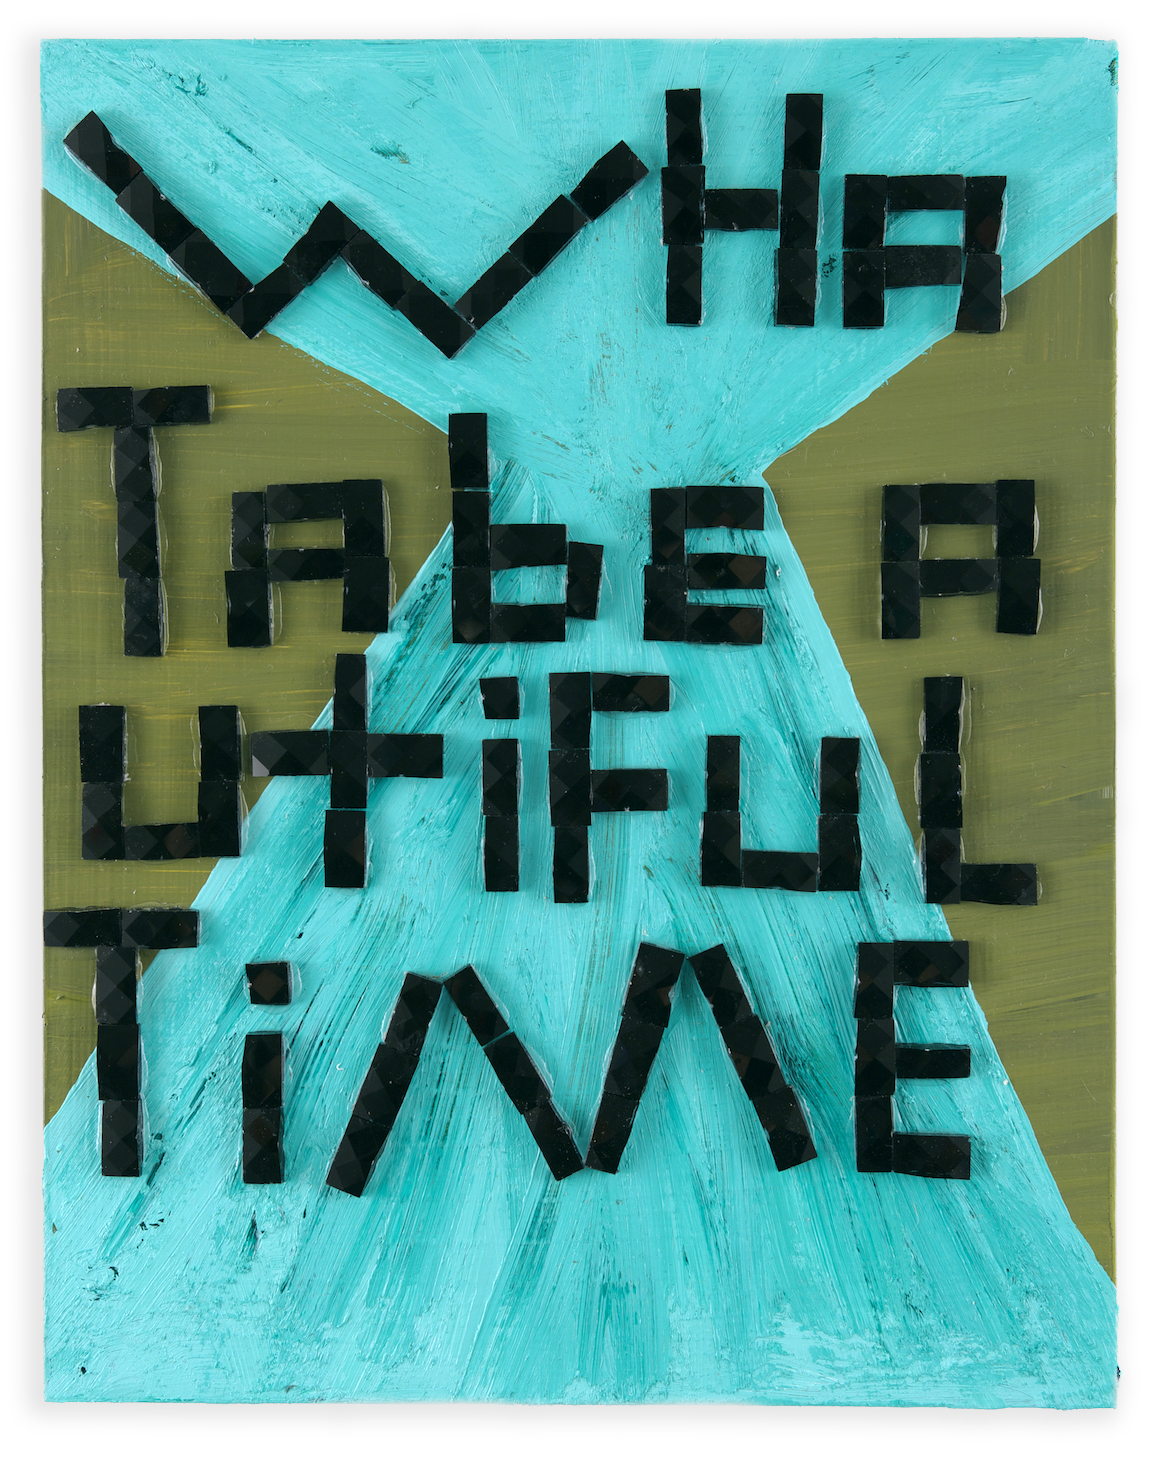 Beautiful Time , 2014, acrylic and glass tile on wood, 14 x 11 in